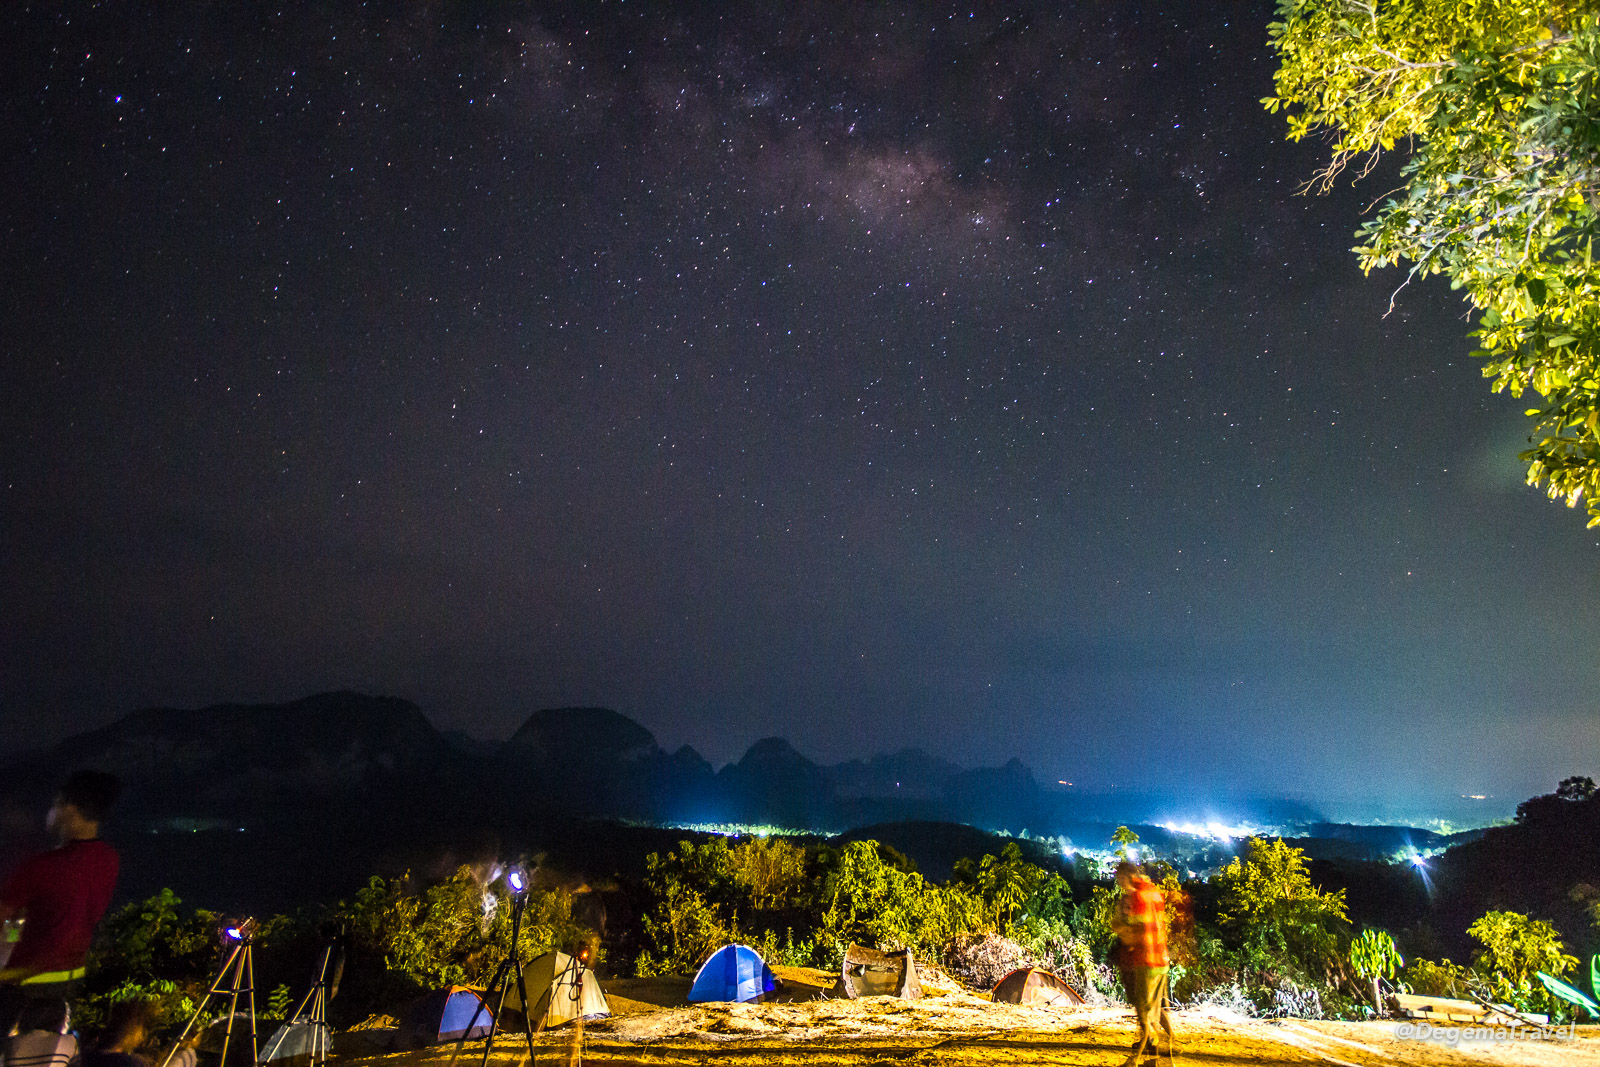 The Milky Way, as seen from Samet Nang She Viewpoint in Phang Nga, Thailand